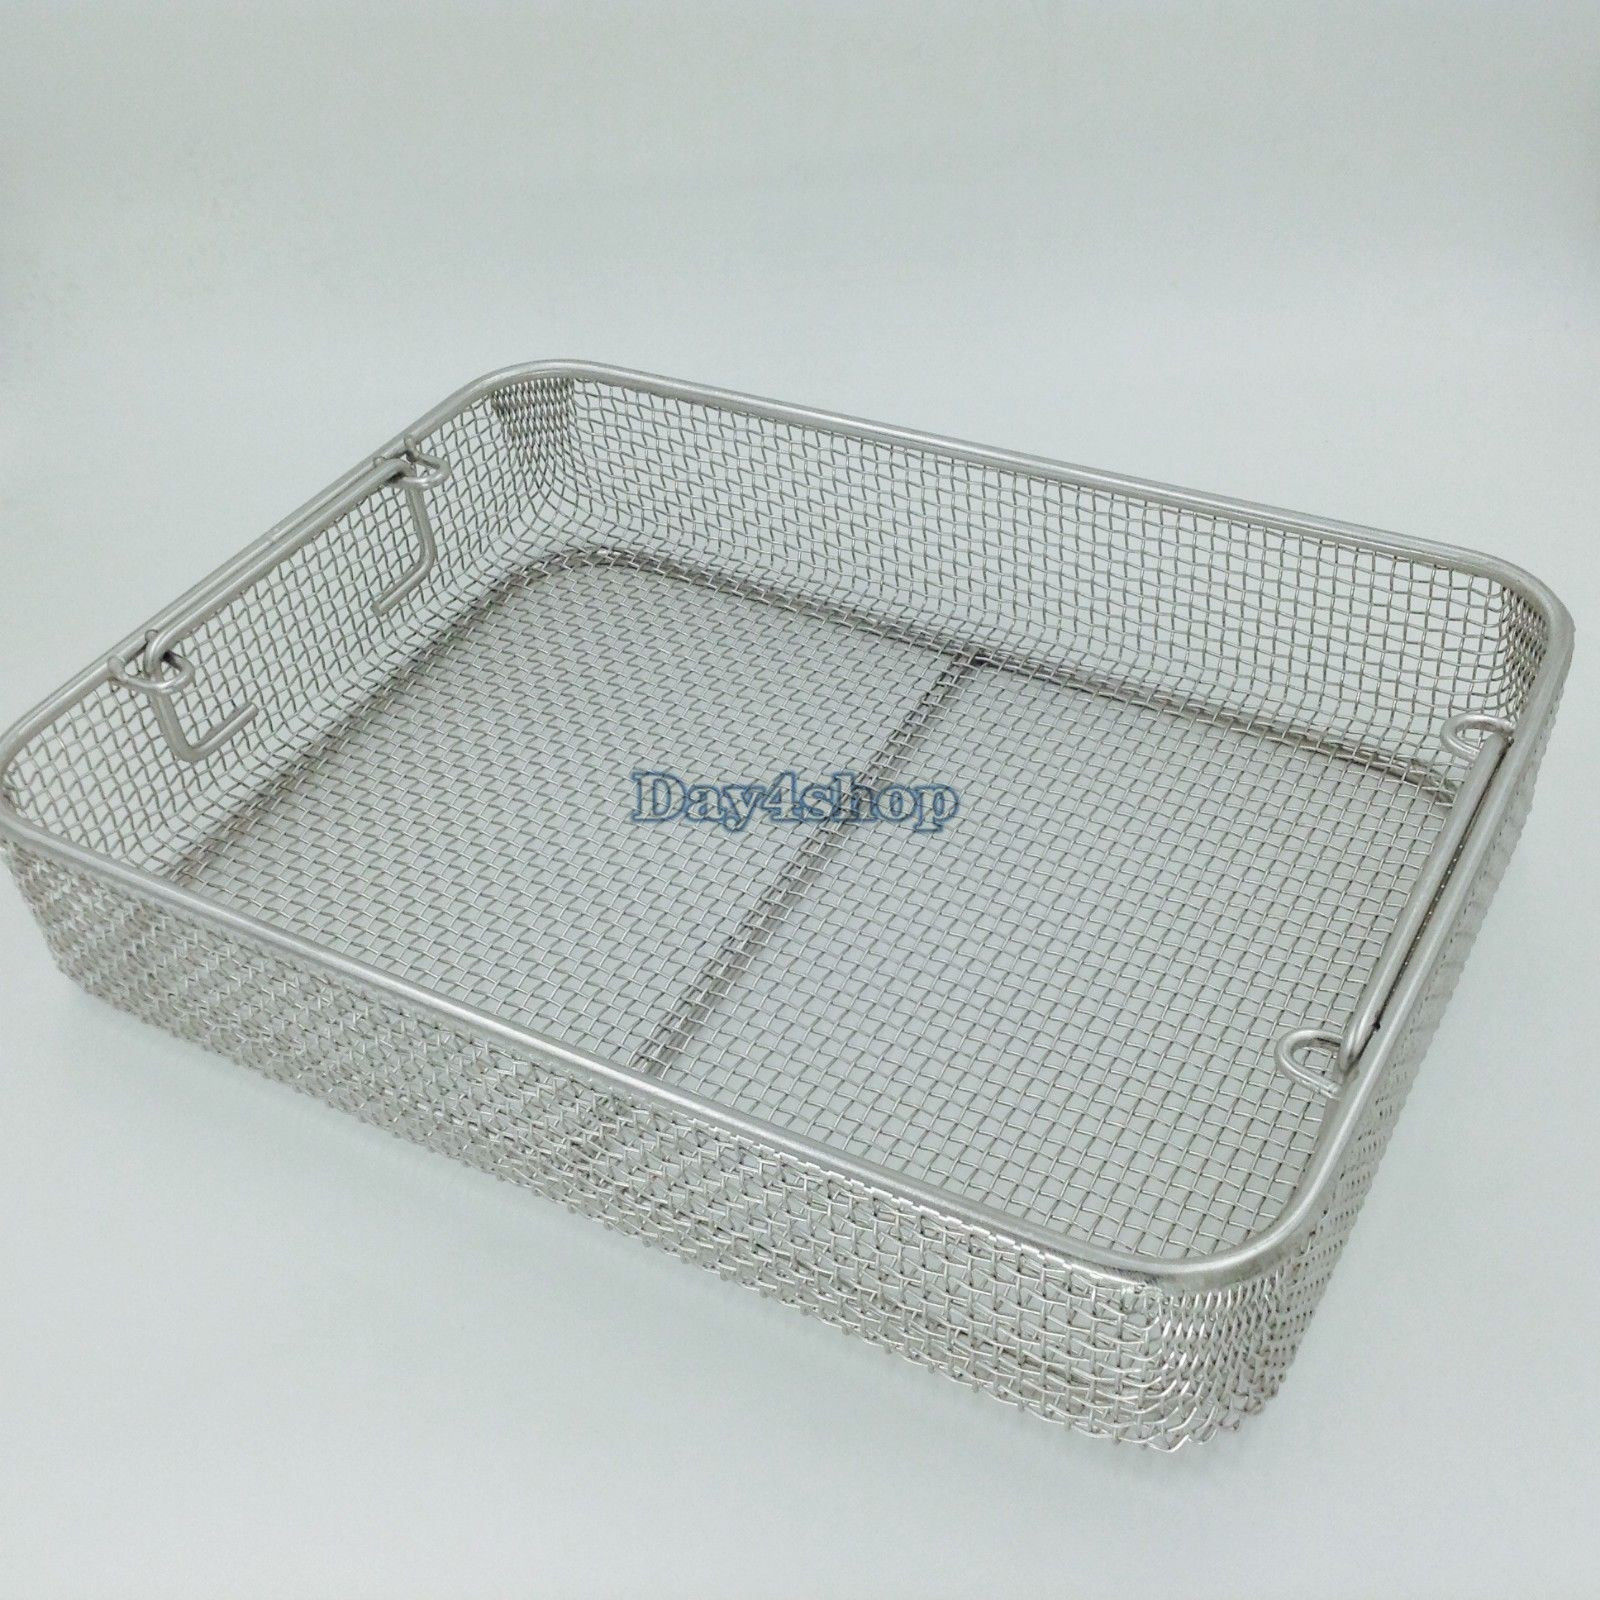 Surgical ophthalmic instruments Stainless steel sterilization tray case box surgical instrument petal sleeve wrap dip hem dress